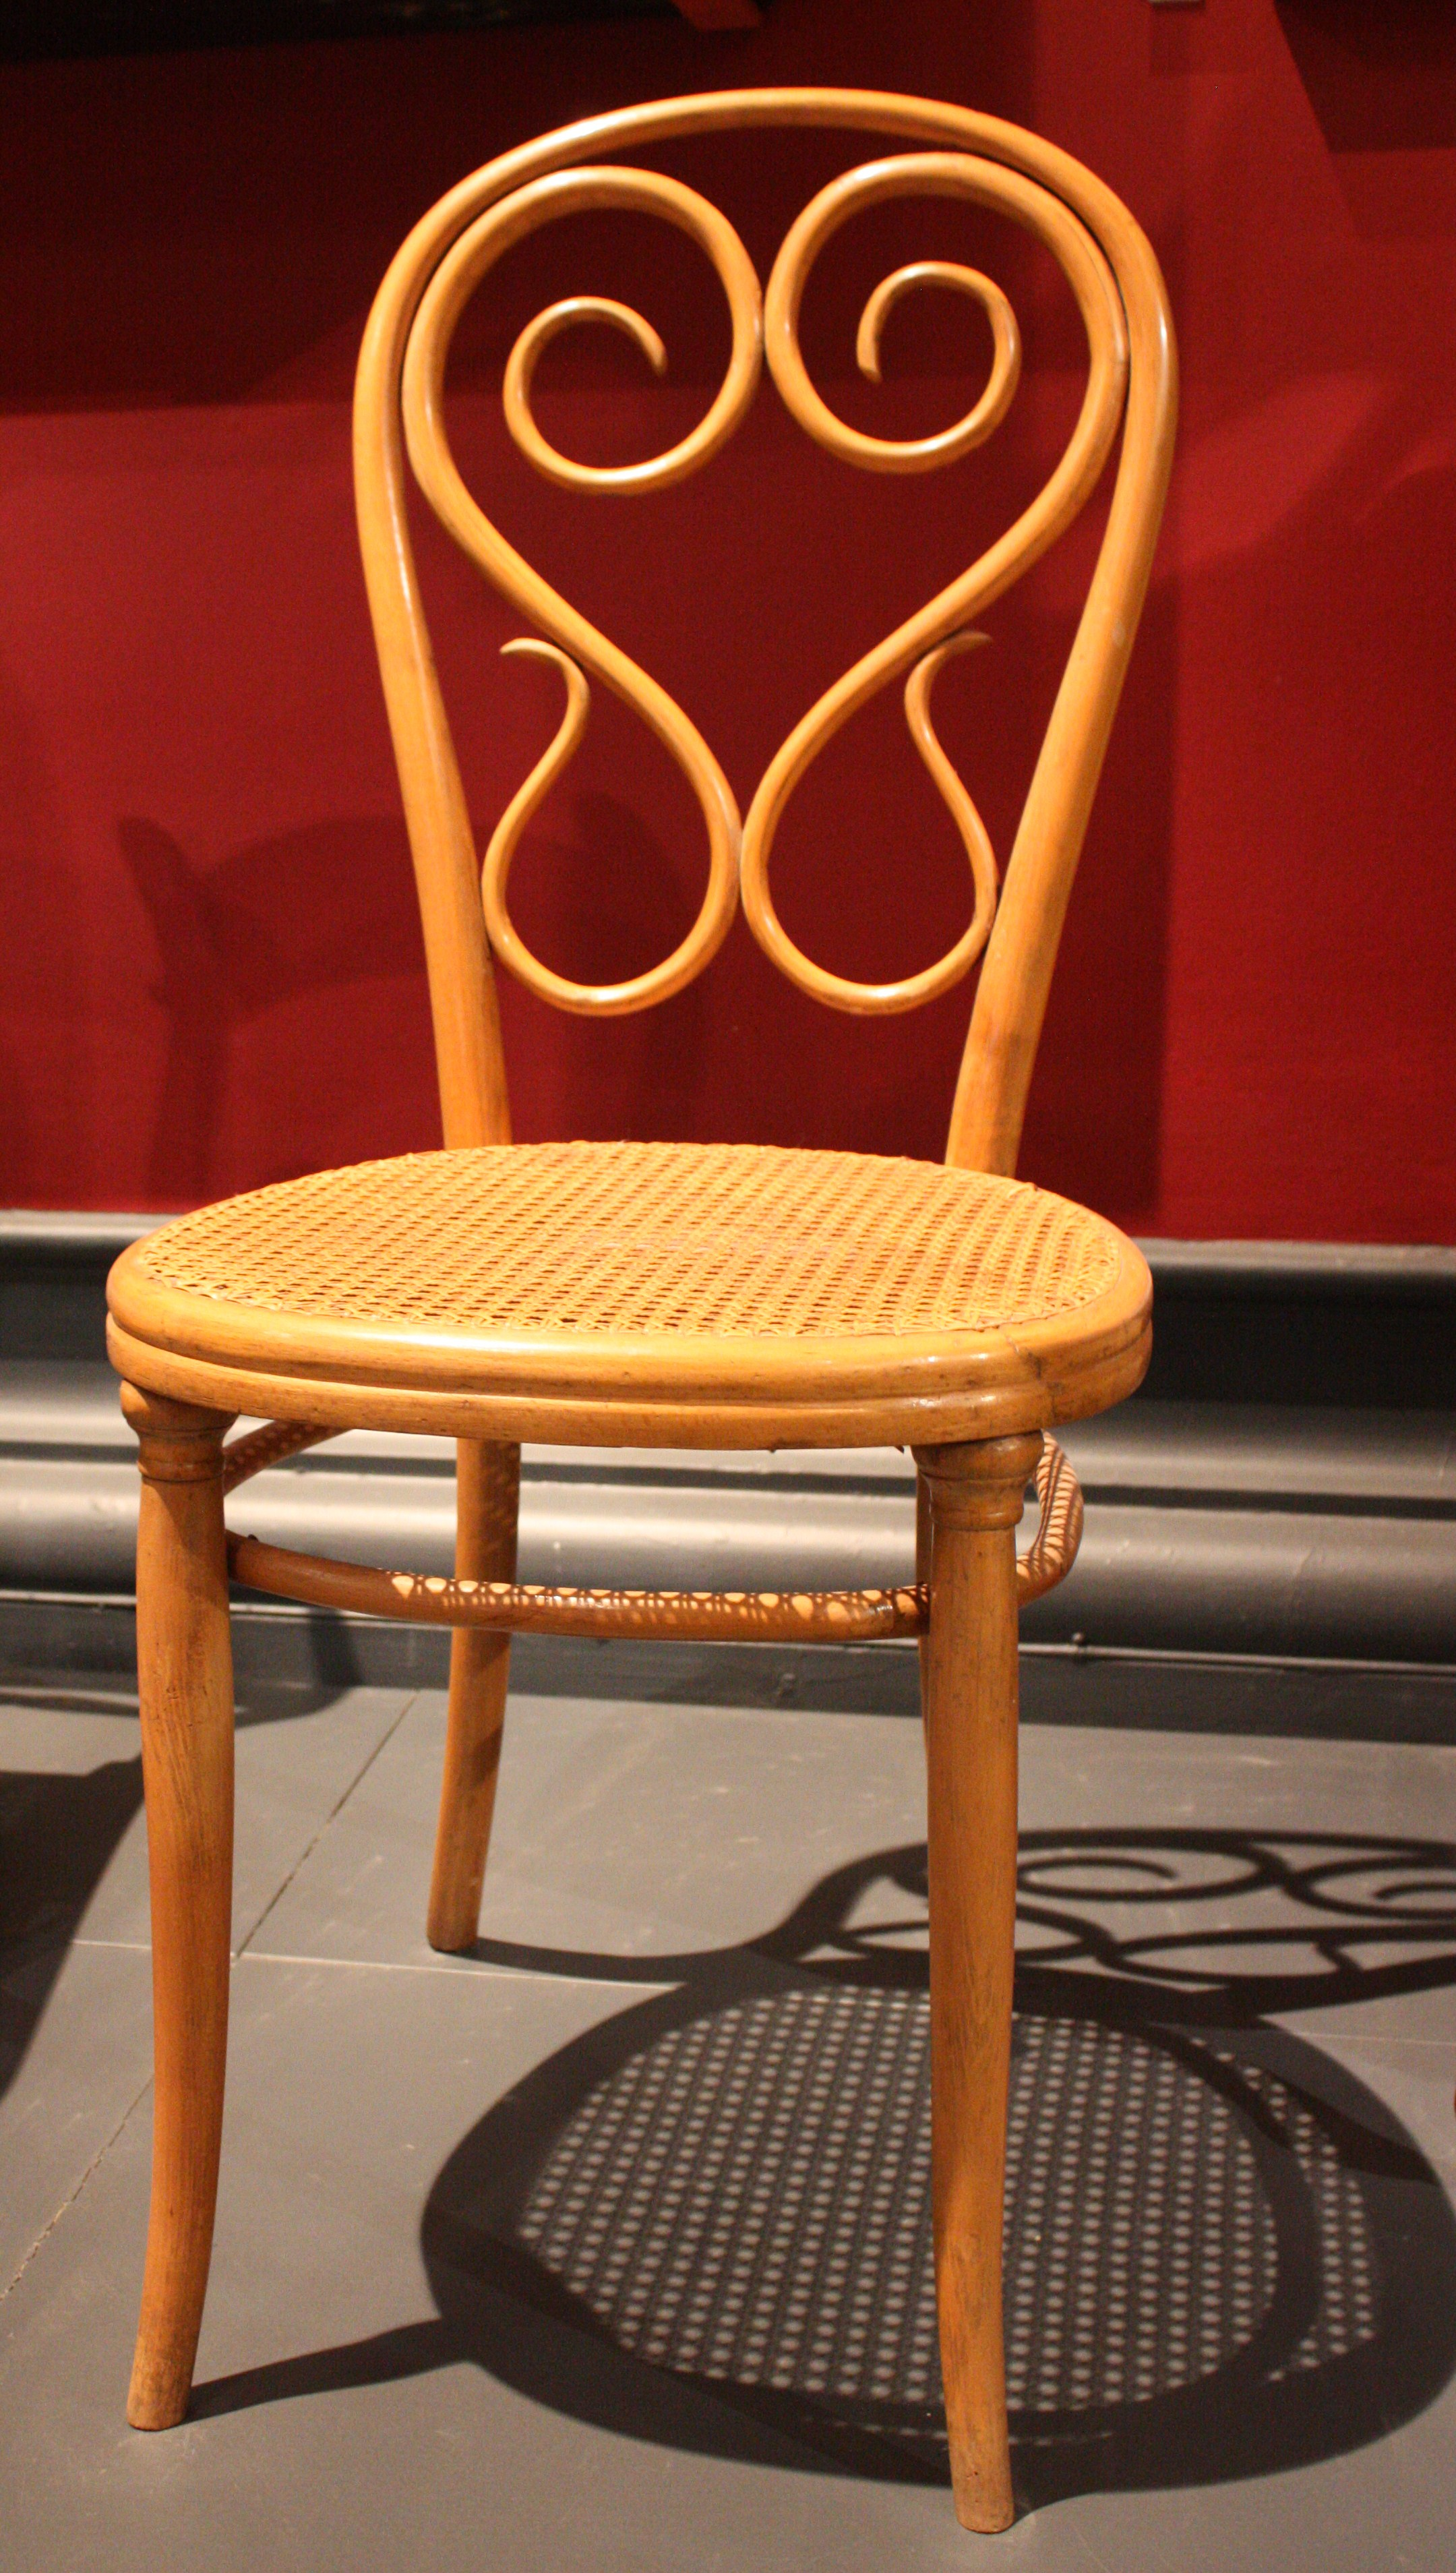 File:BLW Bentwood Chair